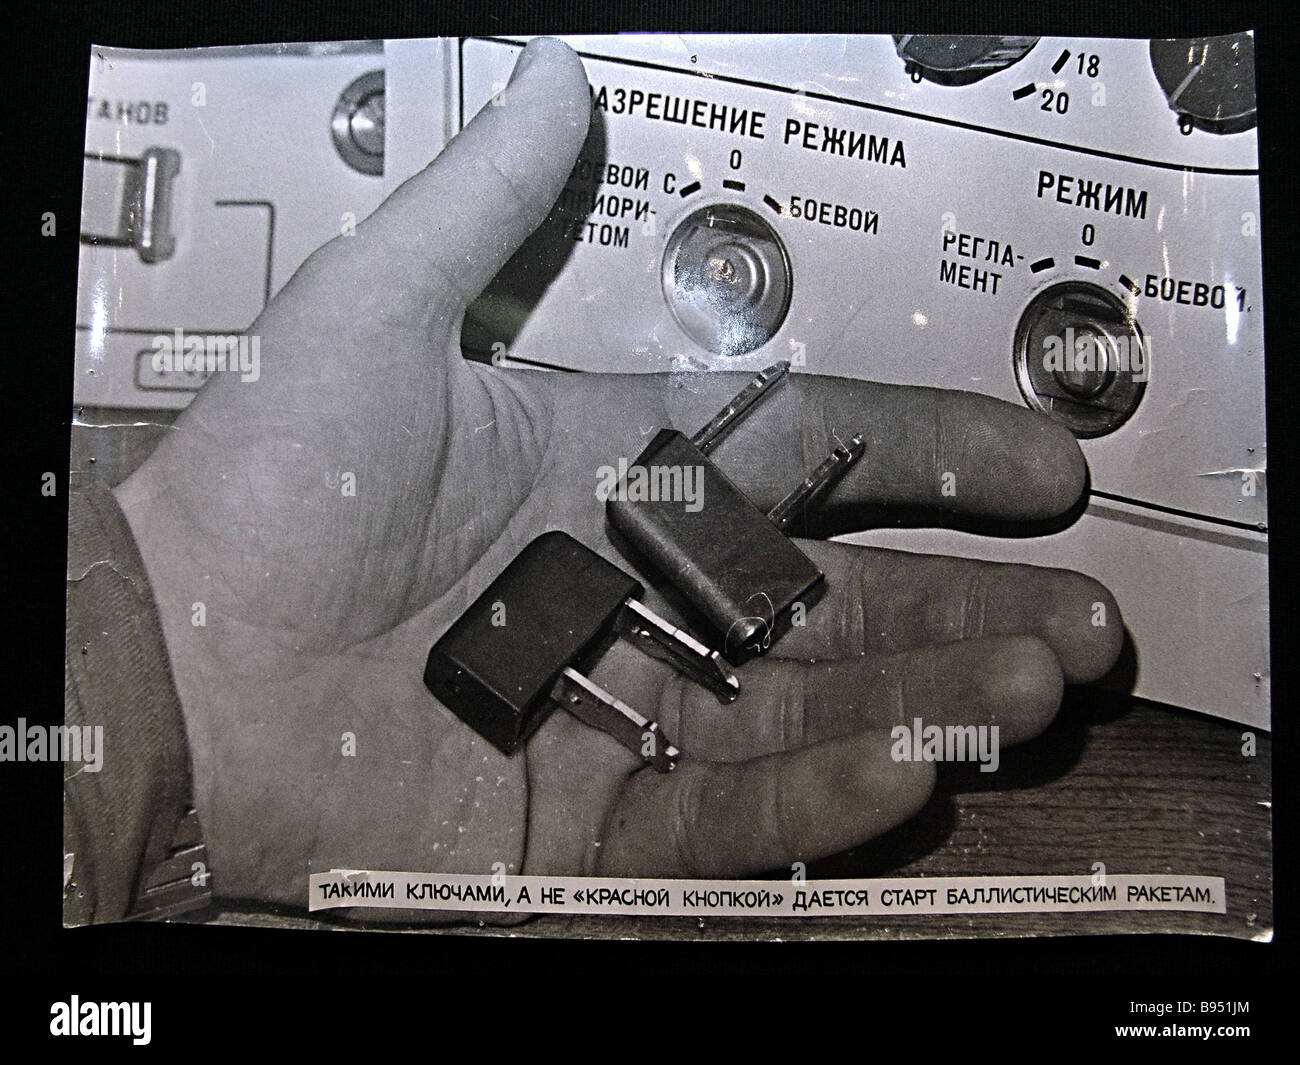 Missile launch keys for nuclear powered ballistic missiles A unique archive photo at the Valour and Glory exhibition - Stock Image